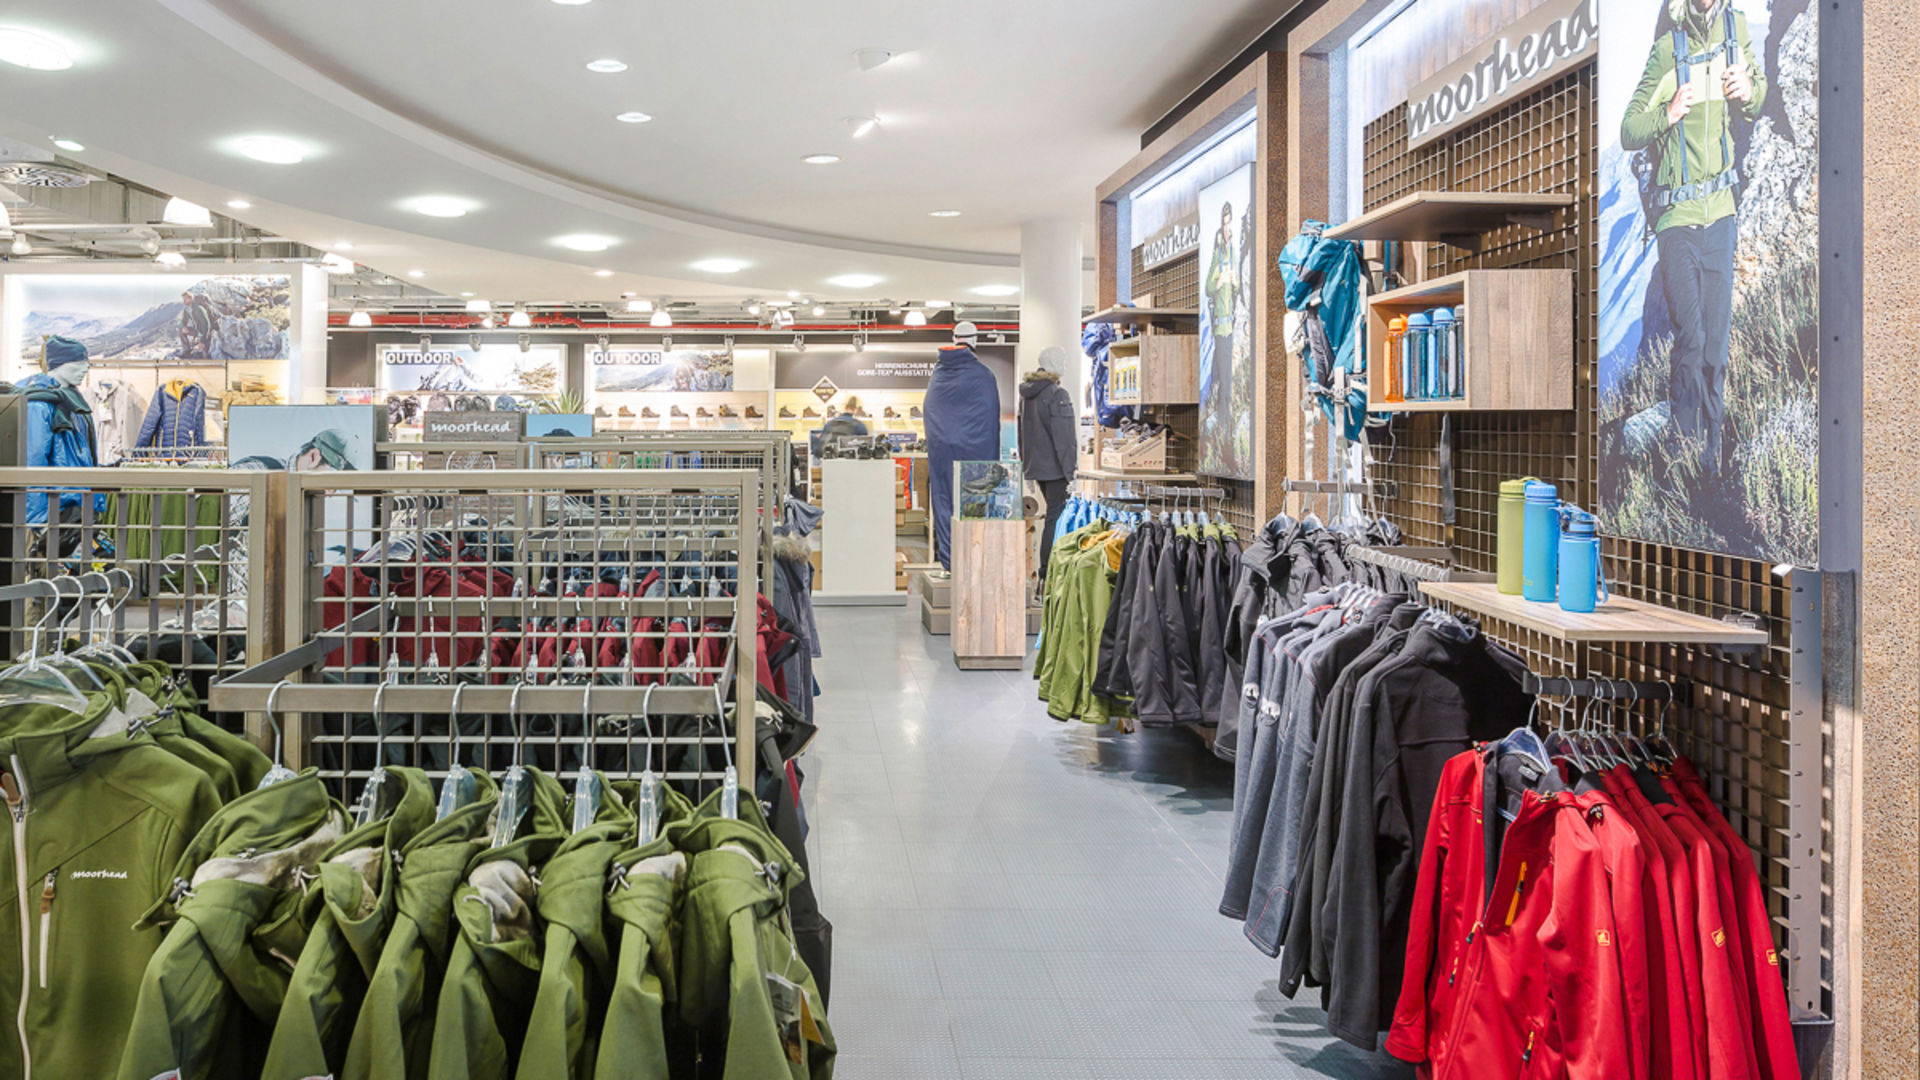 Karstadt Sports, Moorhead, Hamburg (Germany) (4)_web_reference